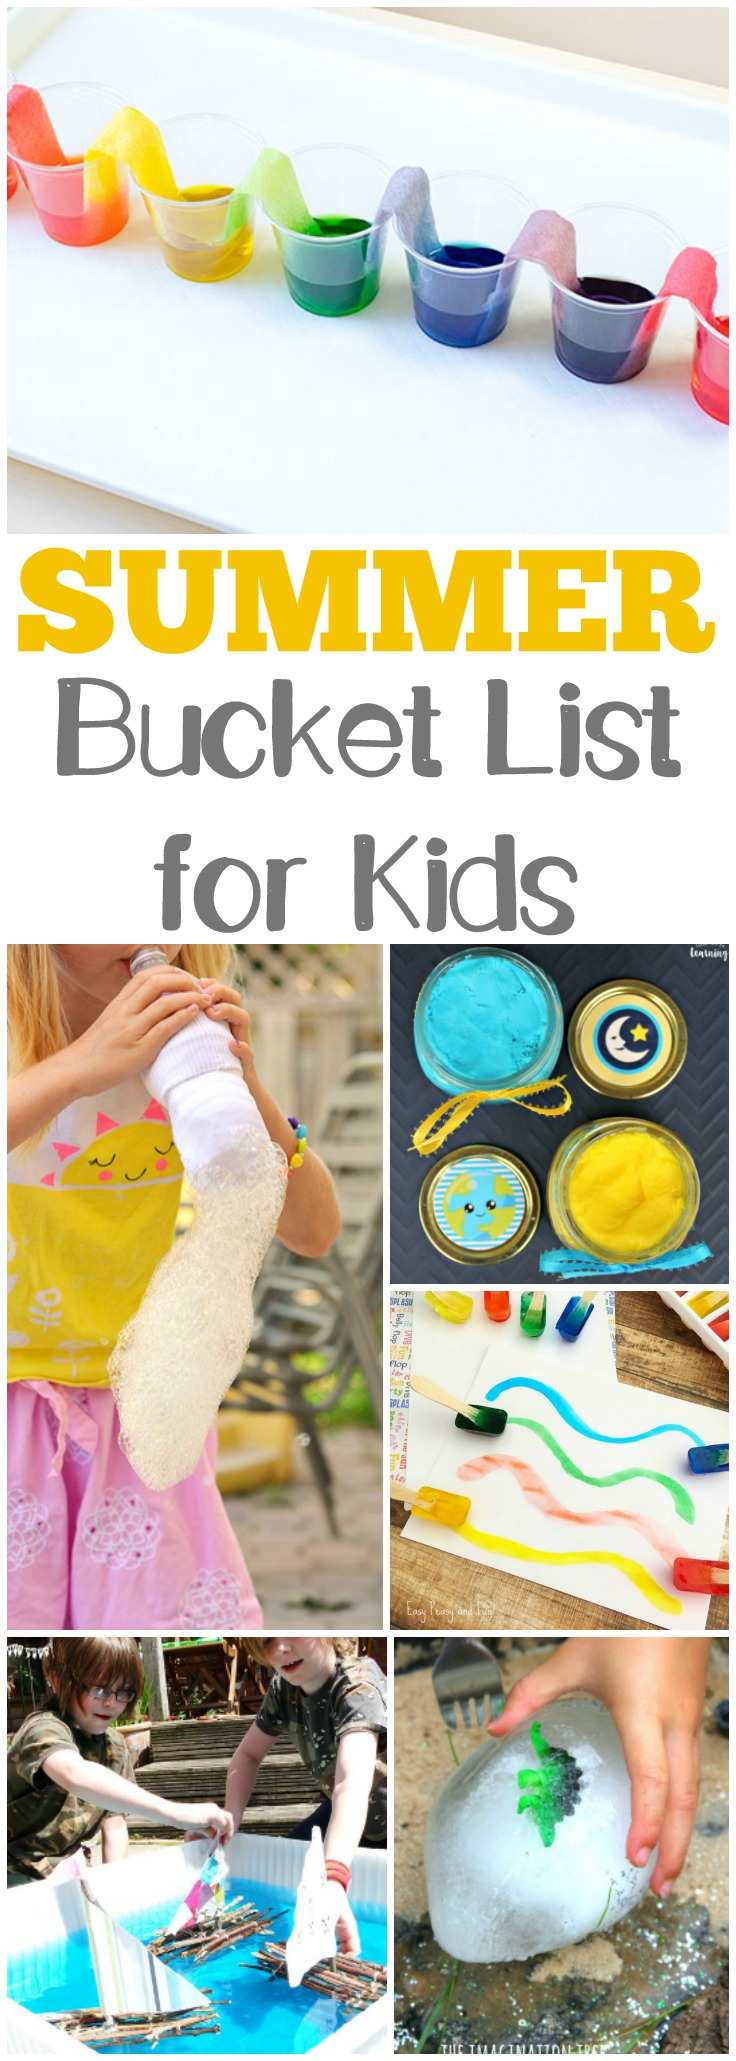 Keep the little ones entertained this summer with this simple summer bucket list for kids! Plenty of hands-on activities to try during summer break!